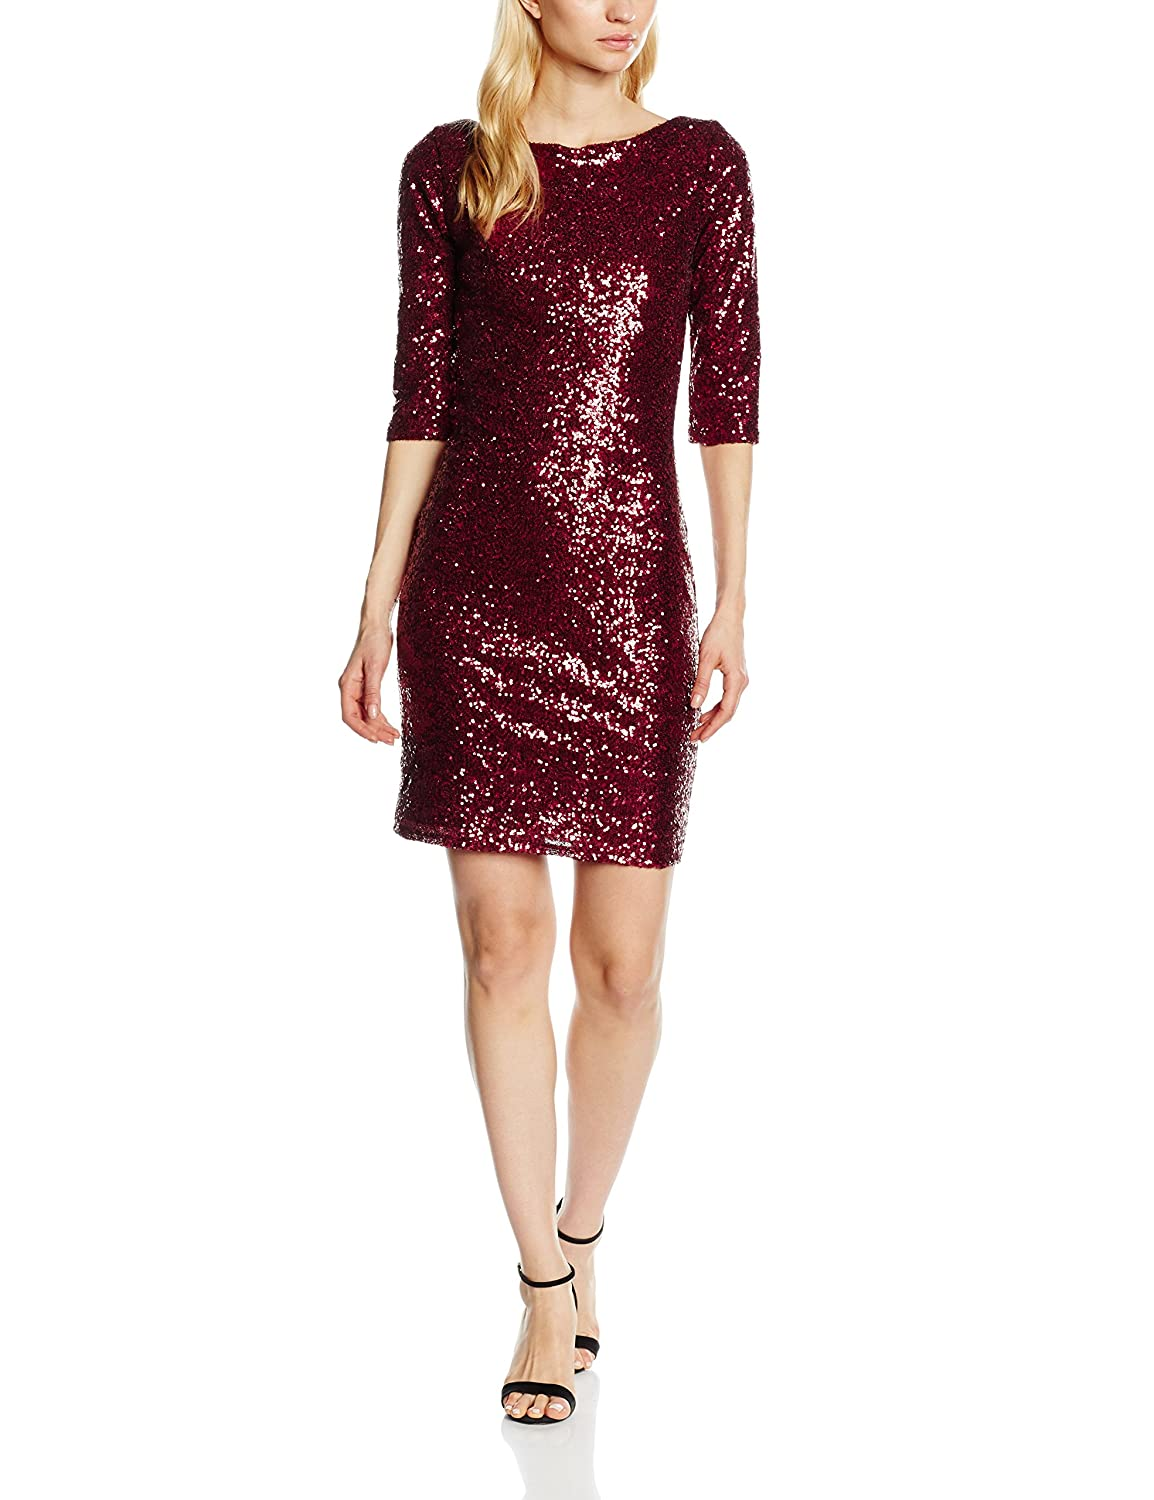 cdd6ff02a38 Hot Squash Women s Sequin Cocktail 3 4 Sleeve Dress  Amazon.co.uk  Clothing